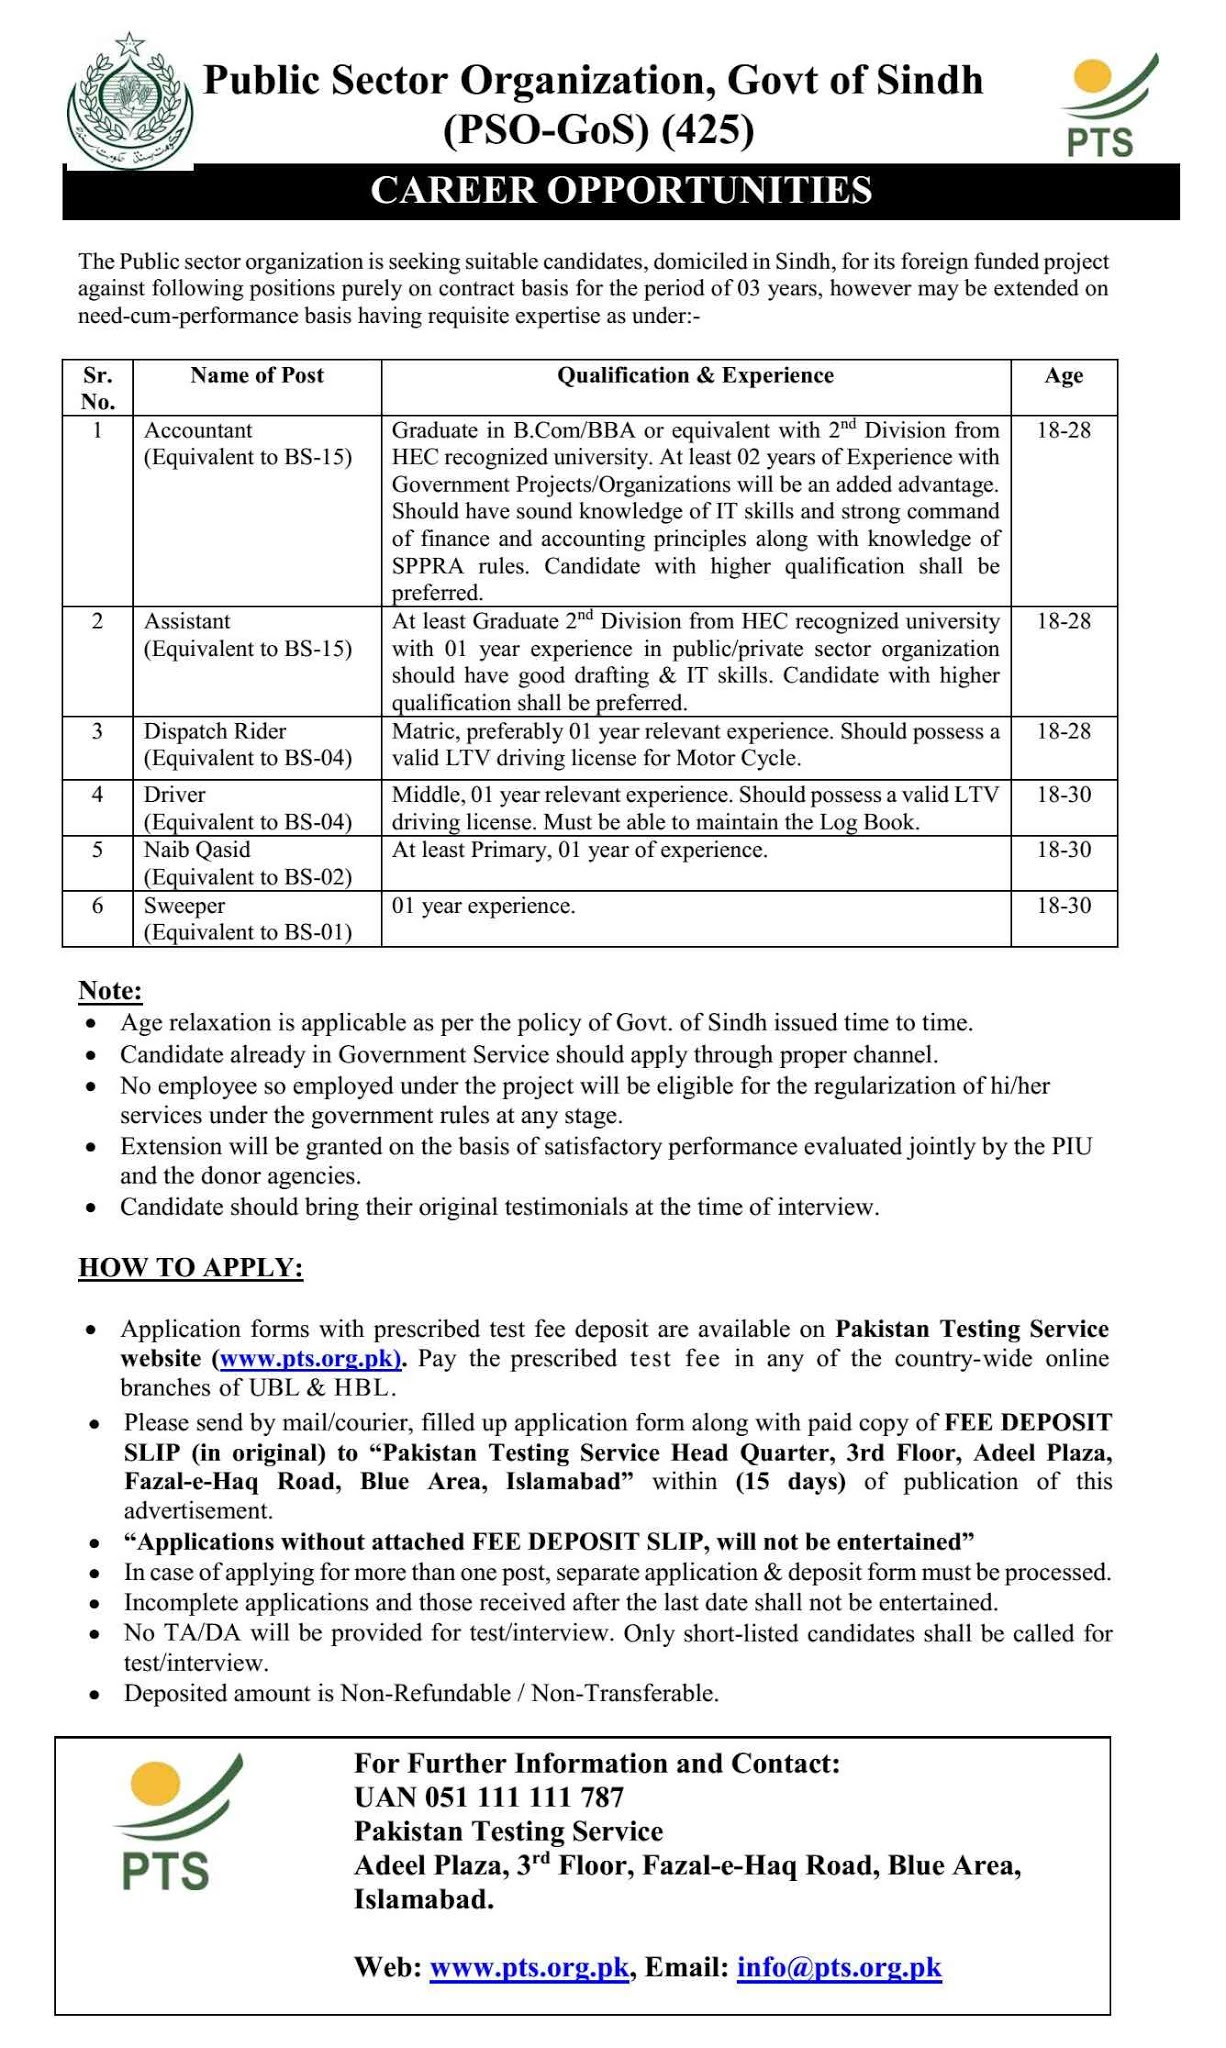 Public Sector Organization Govt of Sindh Jobs PTS Roll No Slip